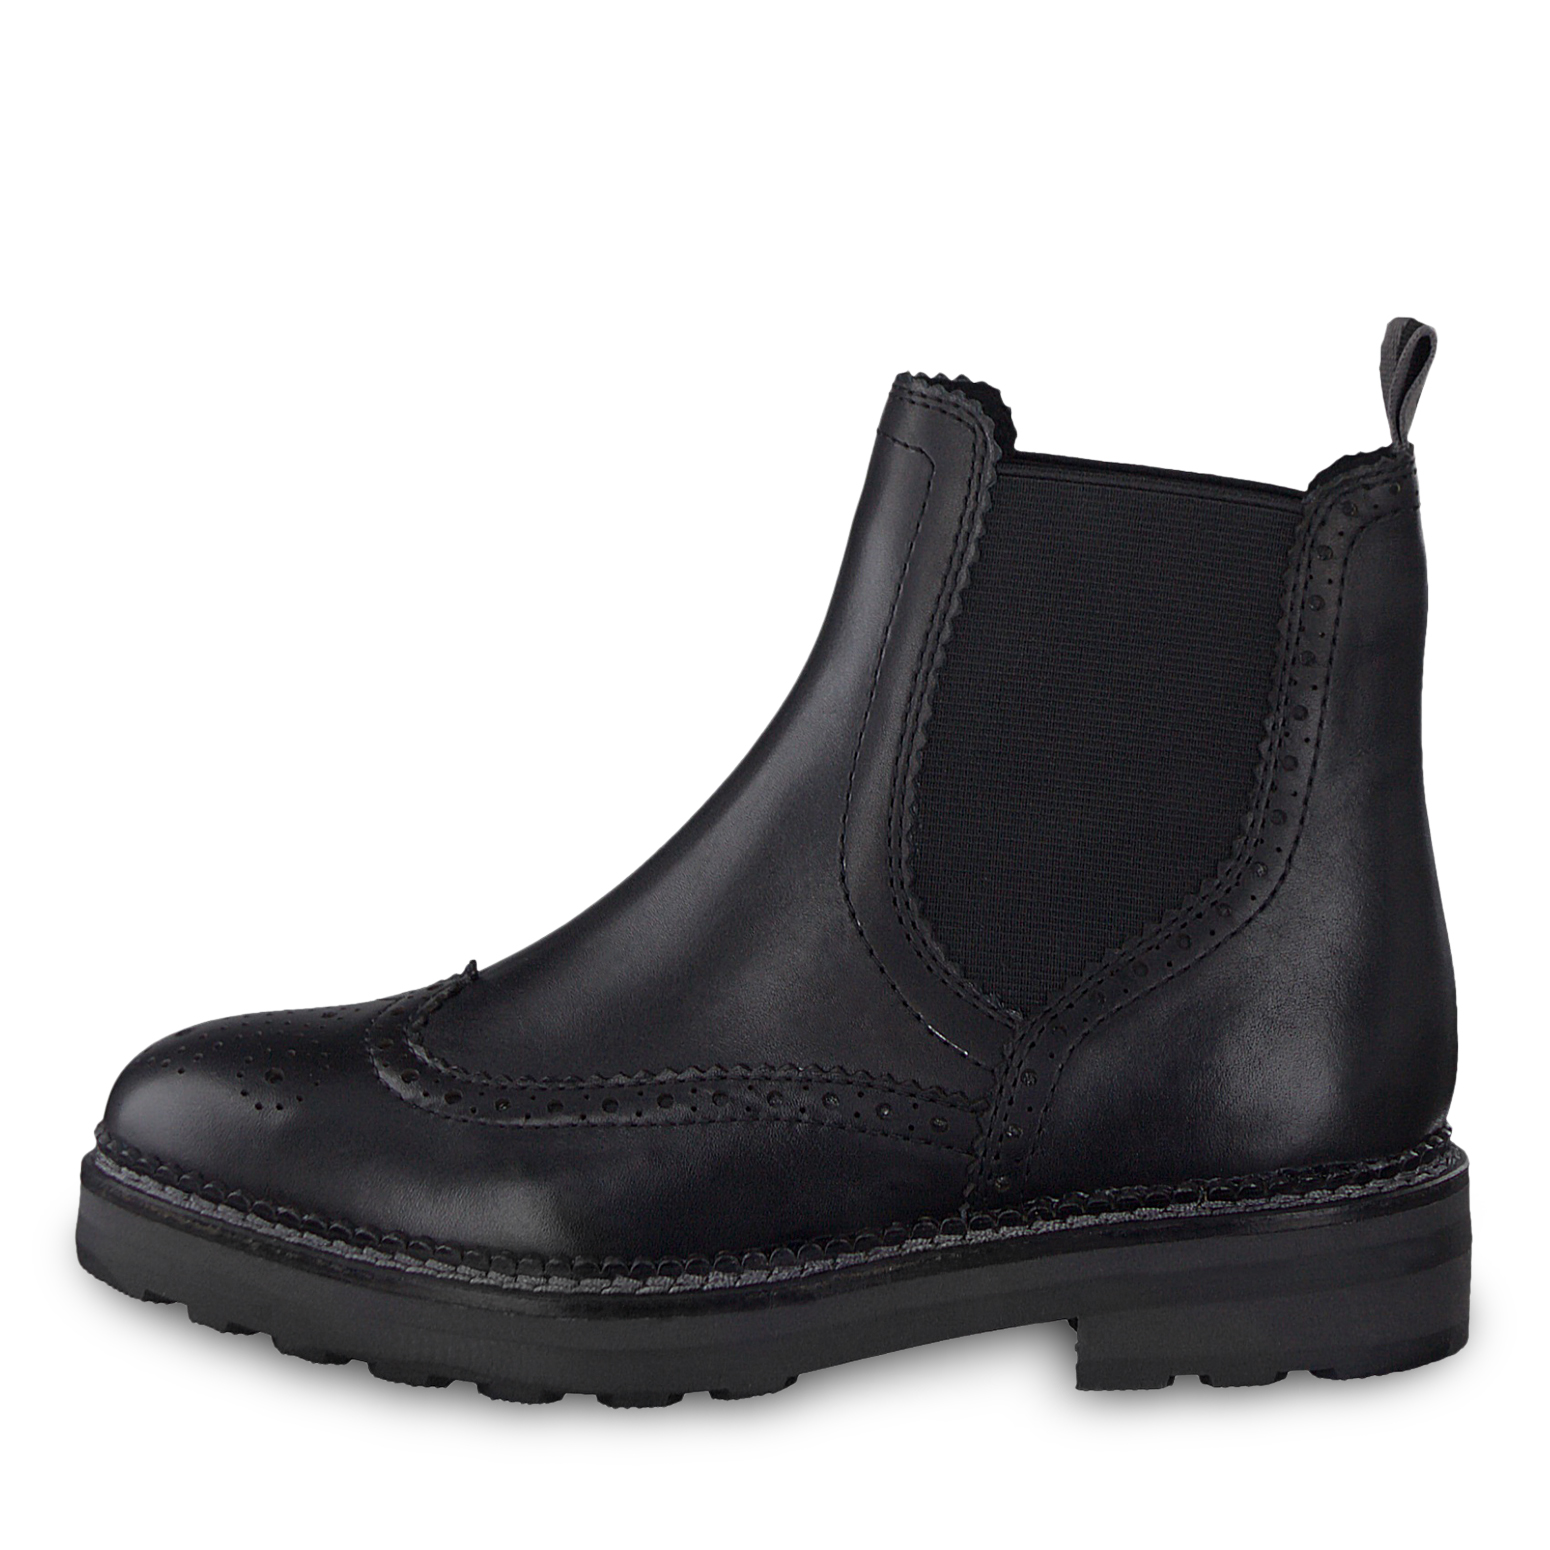 Leather Chelsea boot - black, BLACK ANT.COMB, hi-res